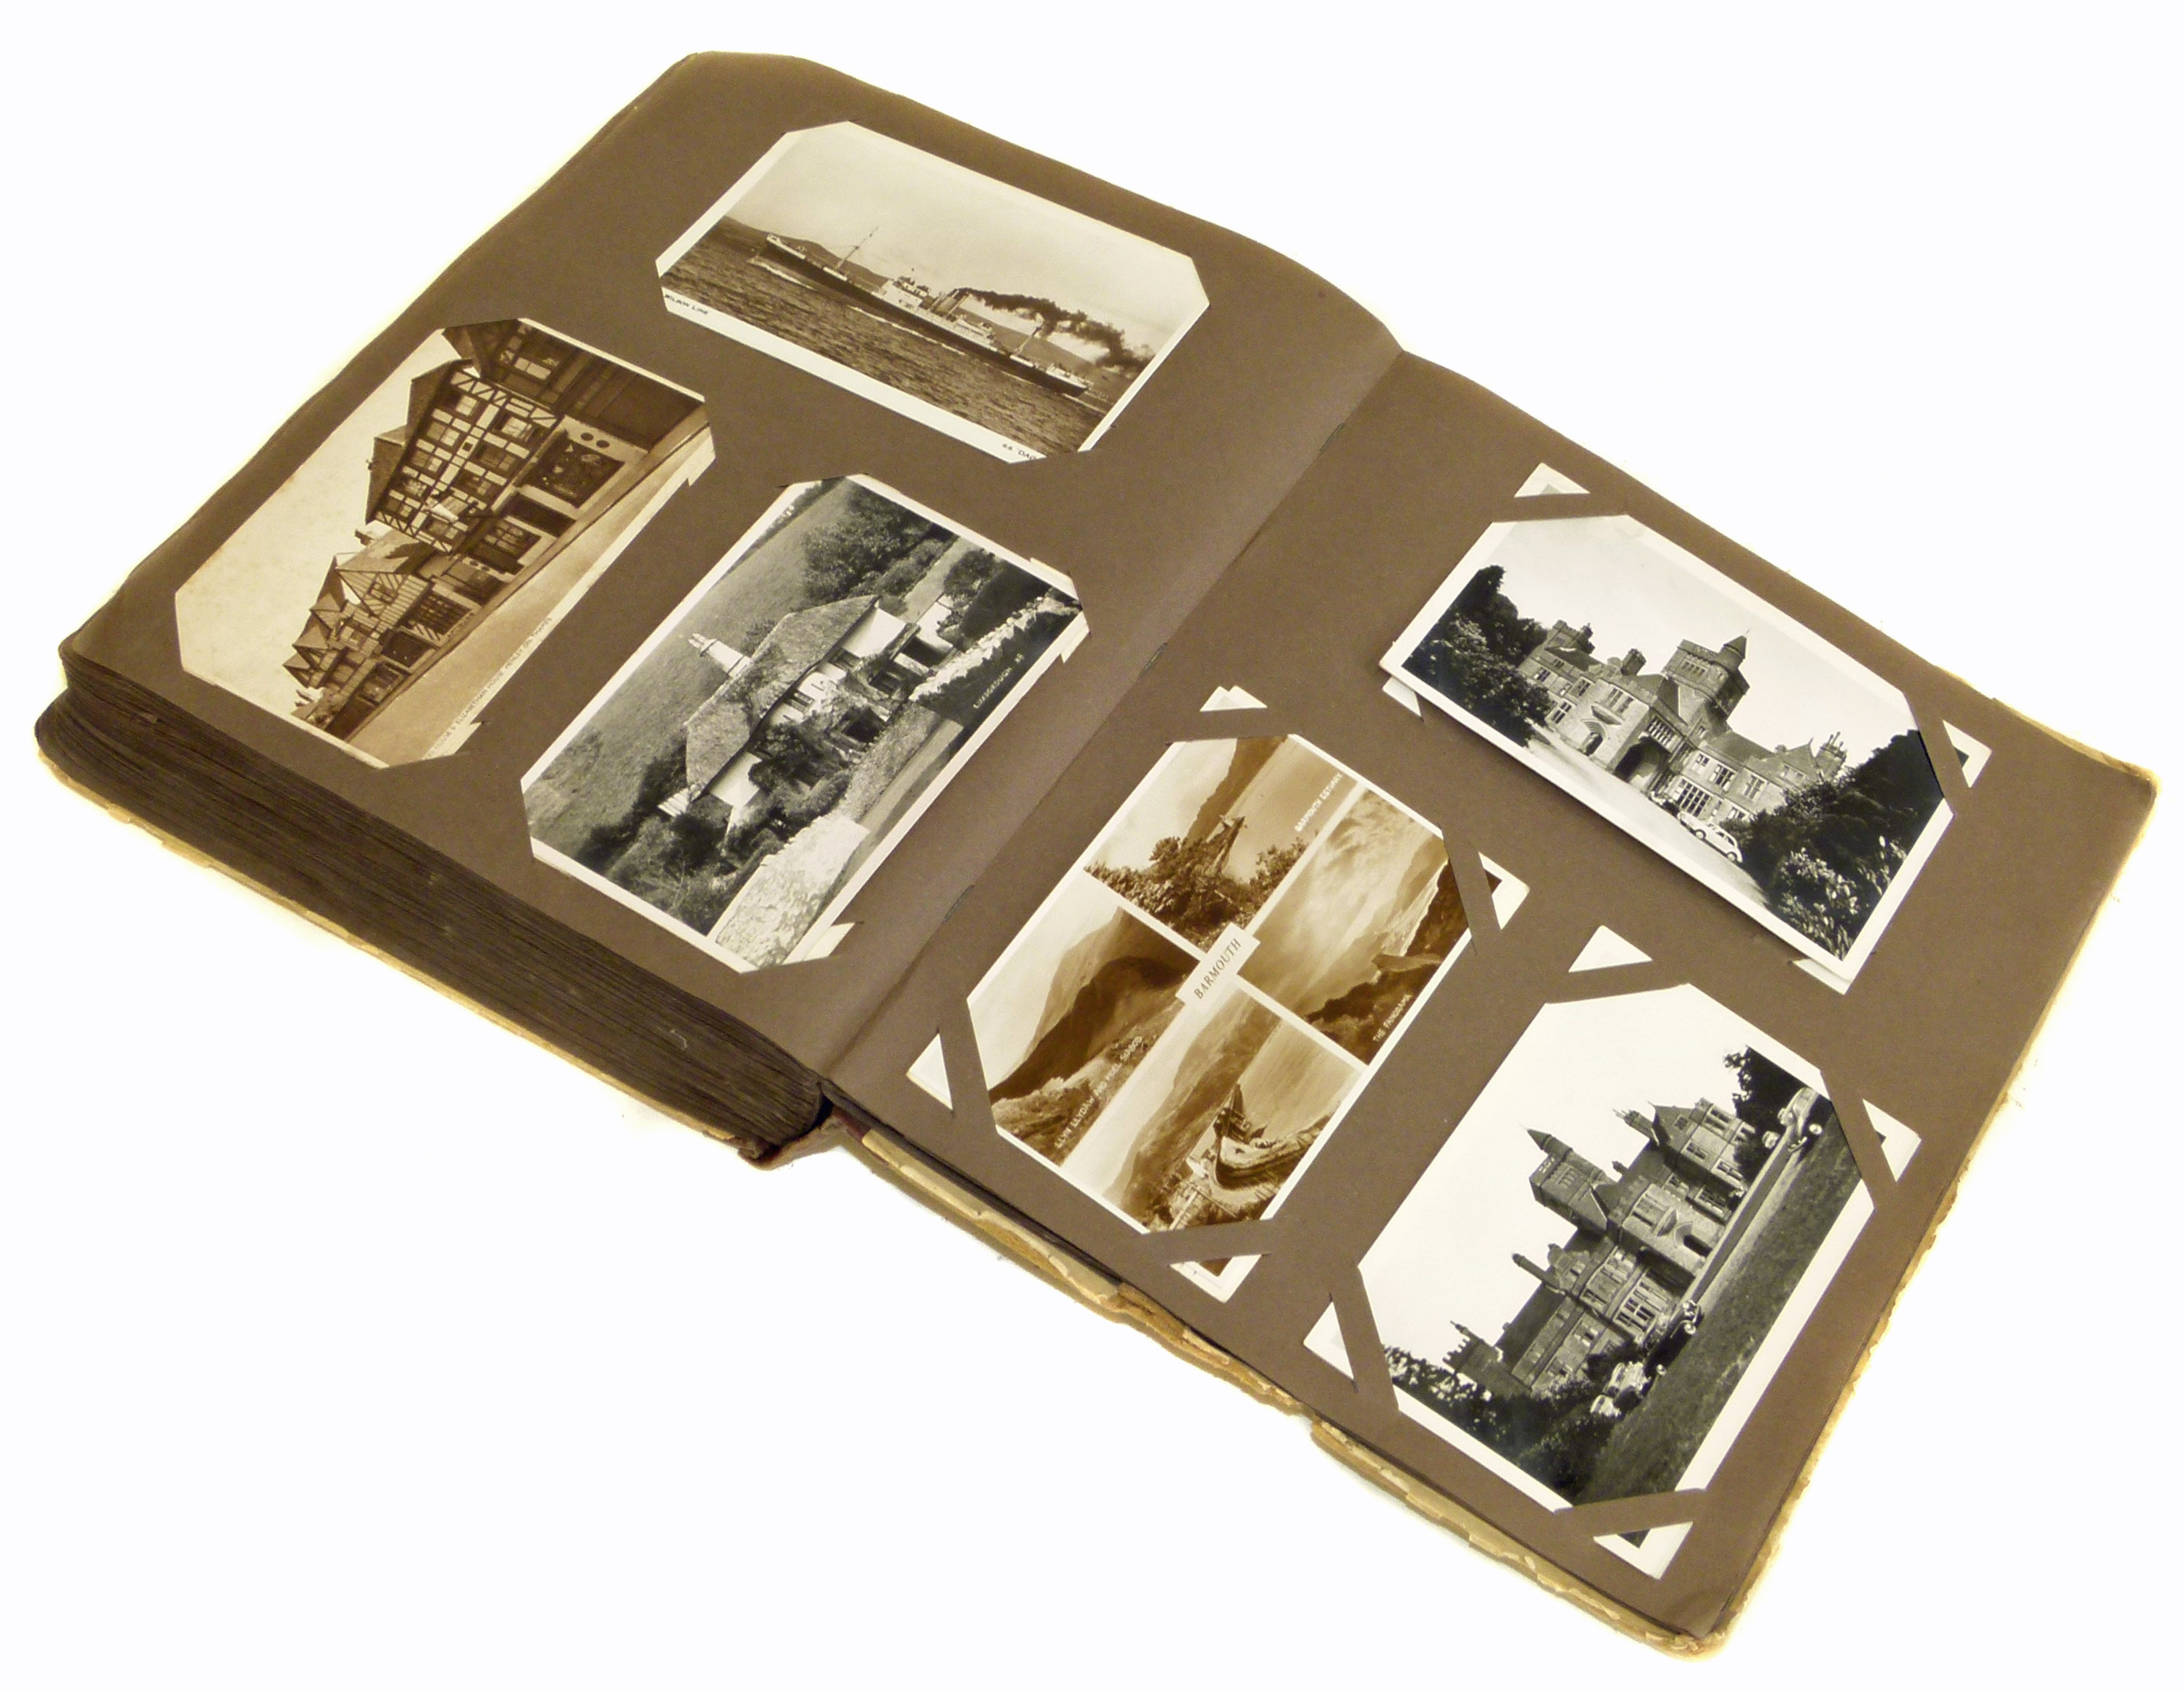 Lot 36 - Old postcard album covering period 1910's Modern (approx 300 cards) We are unable to do condition